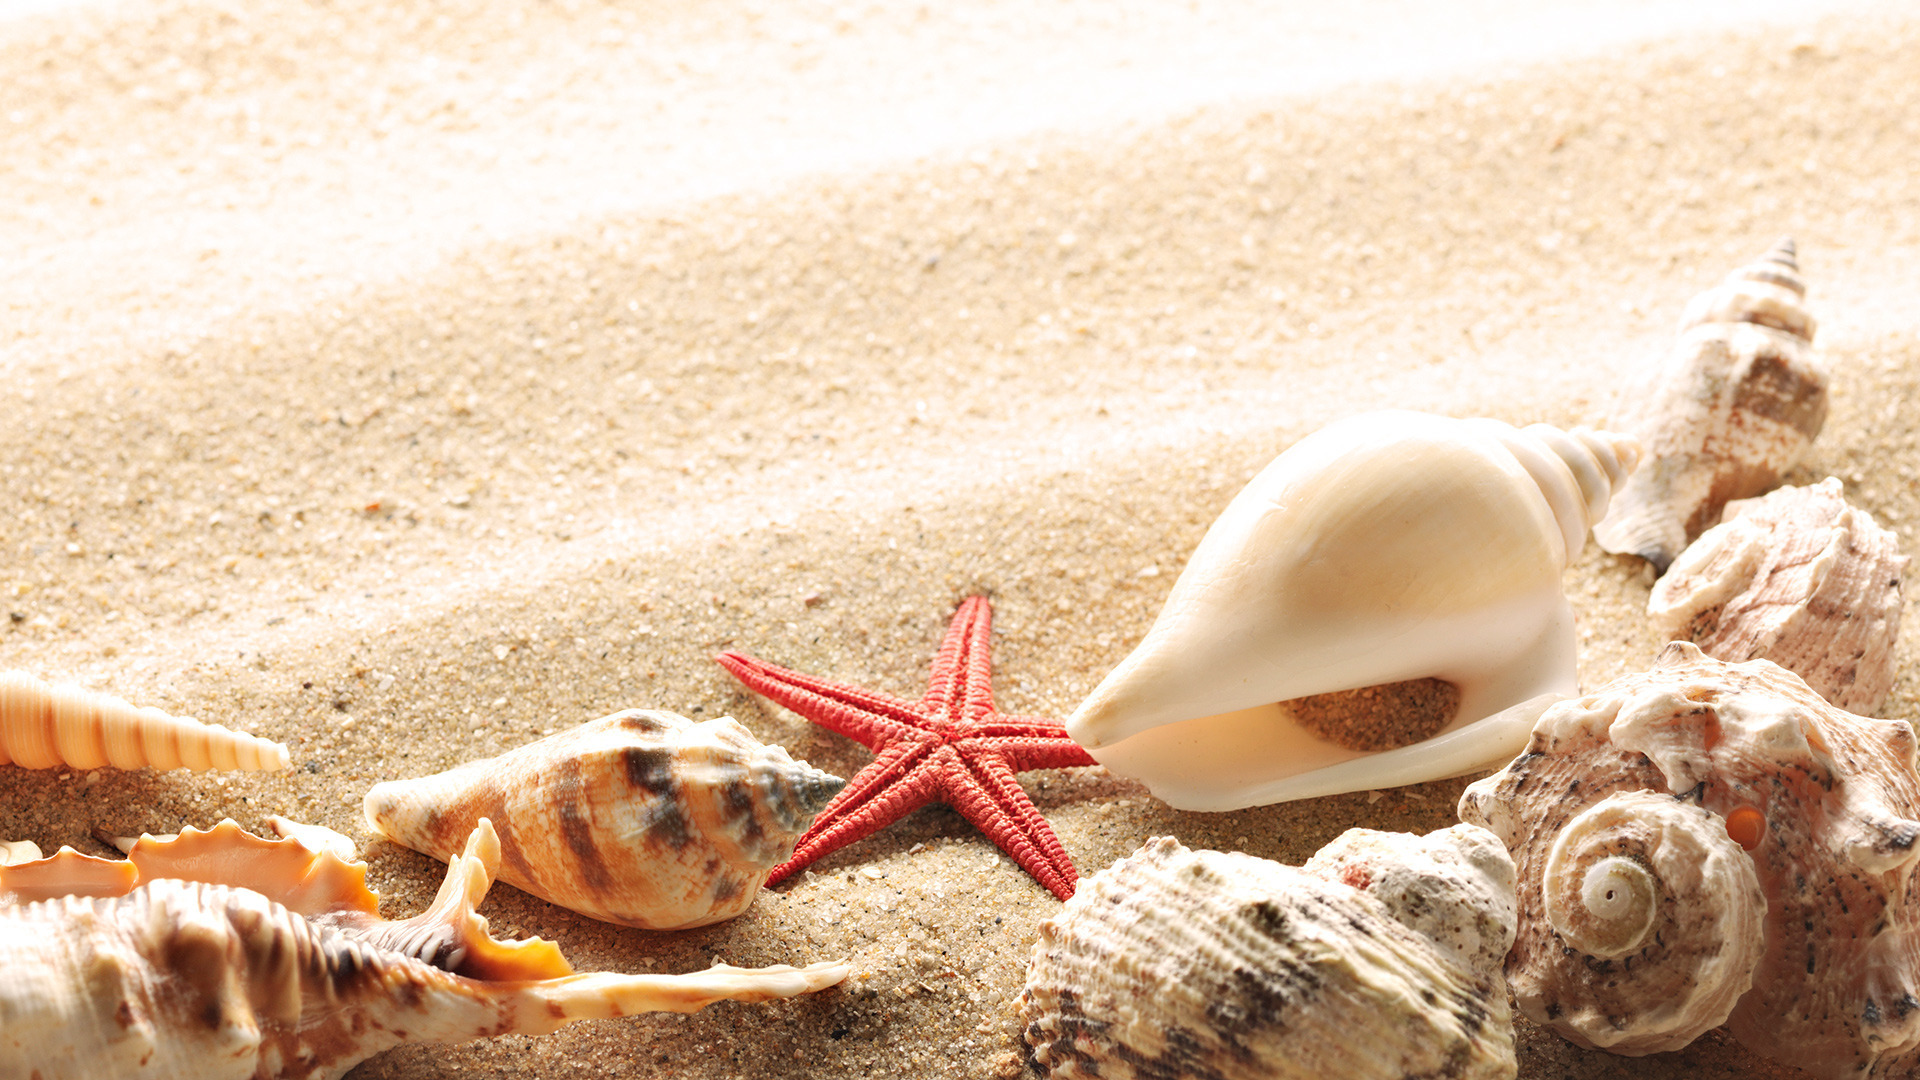 Large Seashell Wallpaper Hq Desktop Wallpapers Xpx 1920x1080px